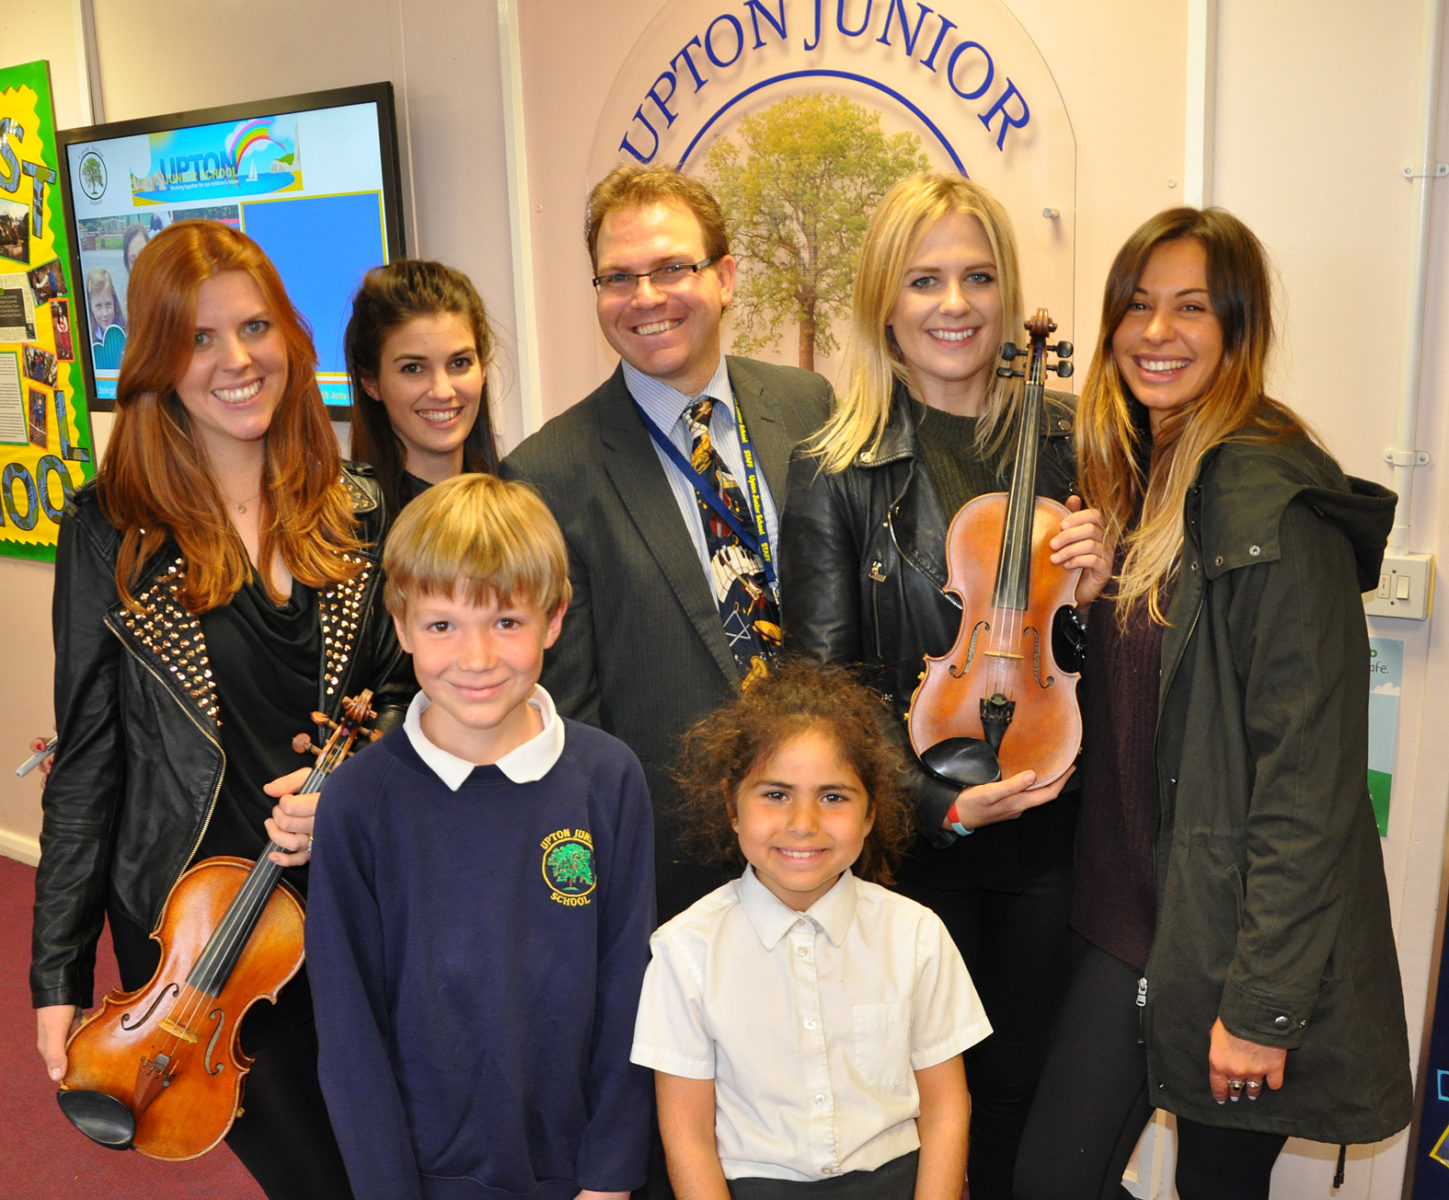 Escala with Scott Welcomme and two pupils of Upton Junior School